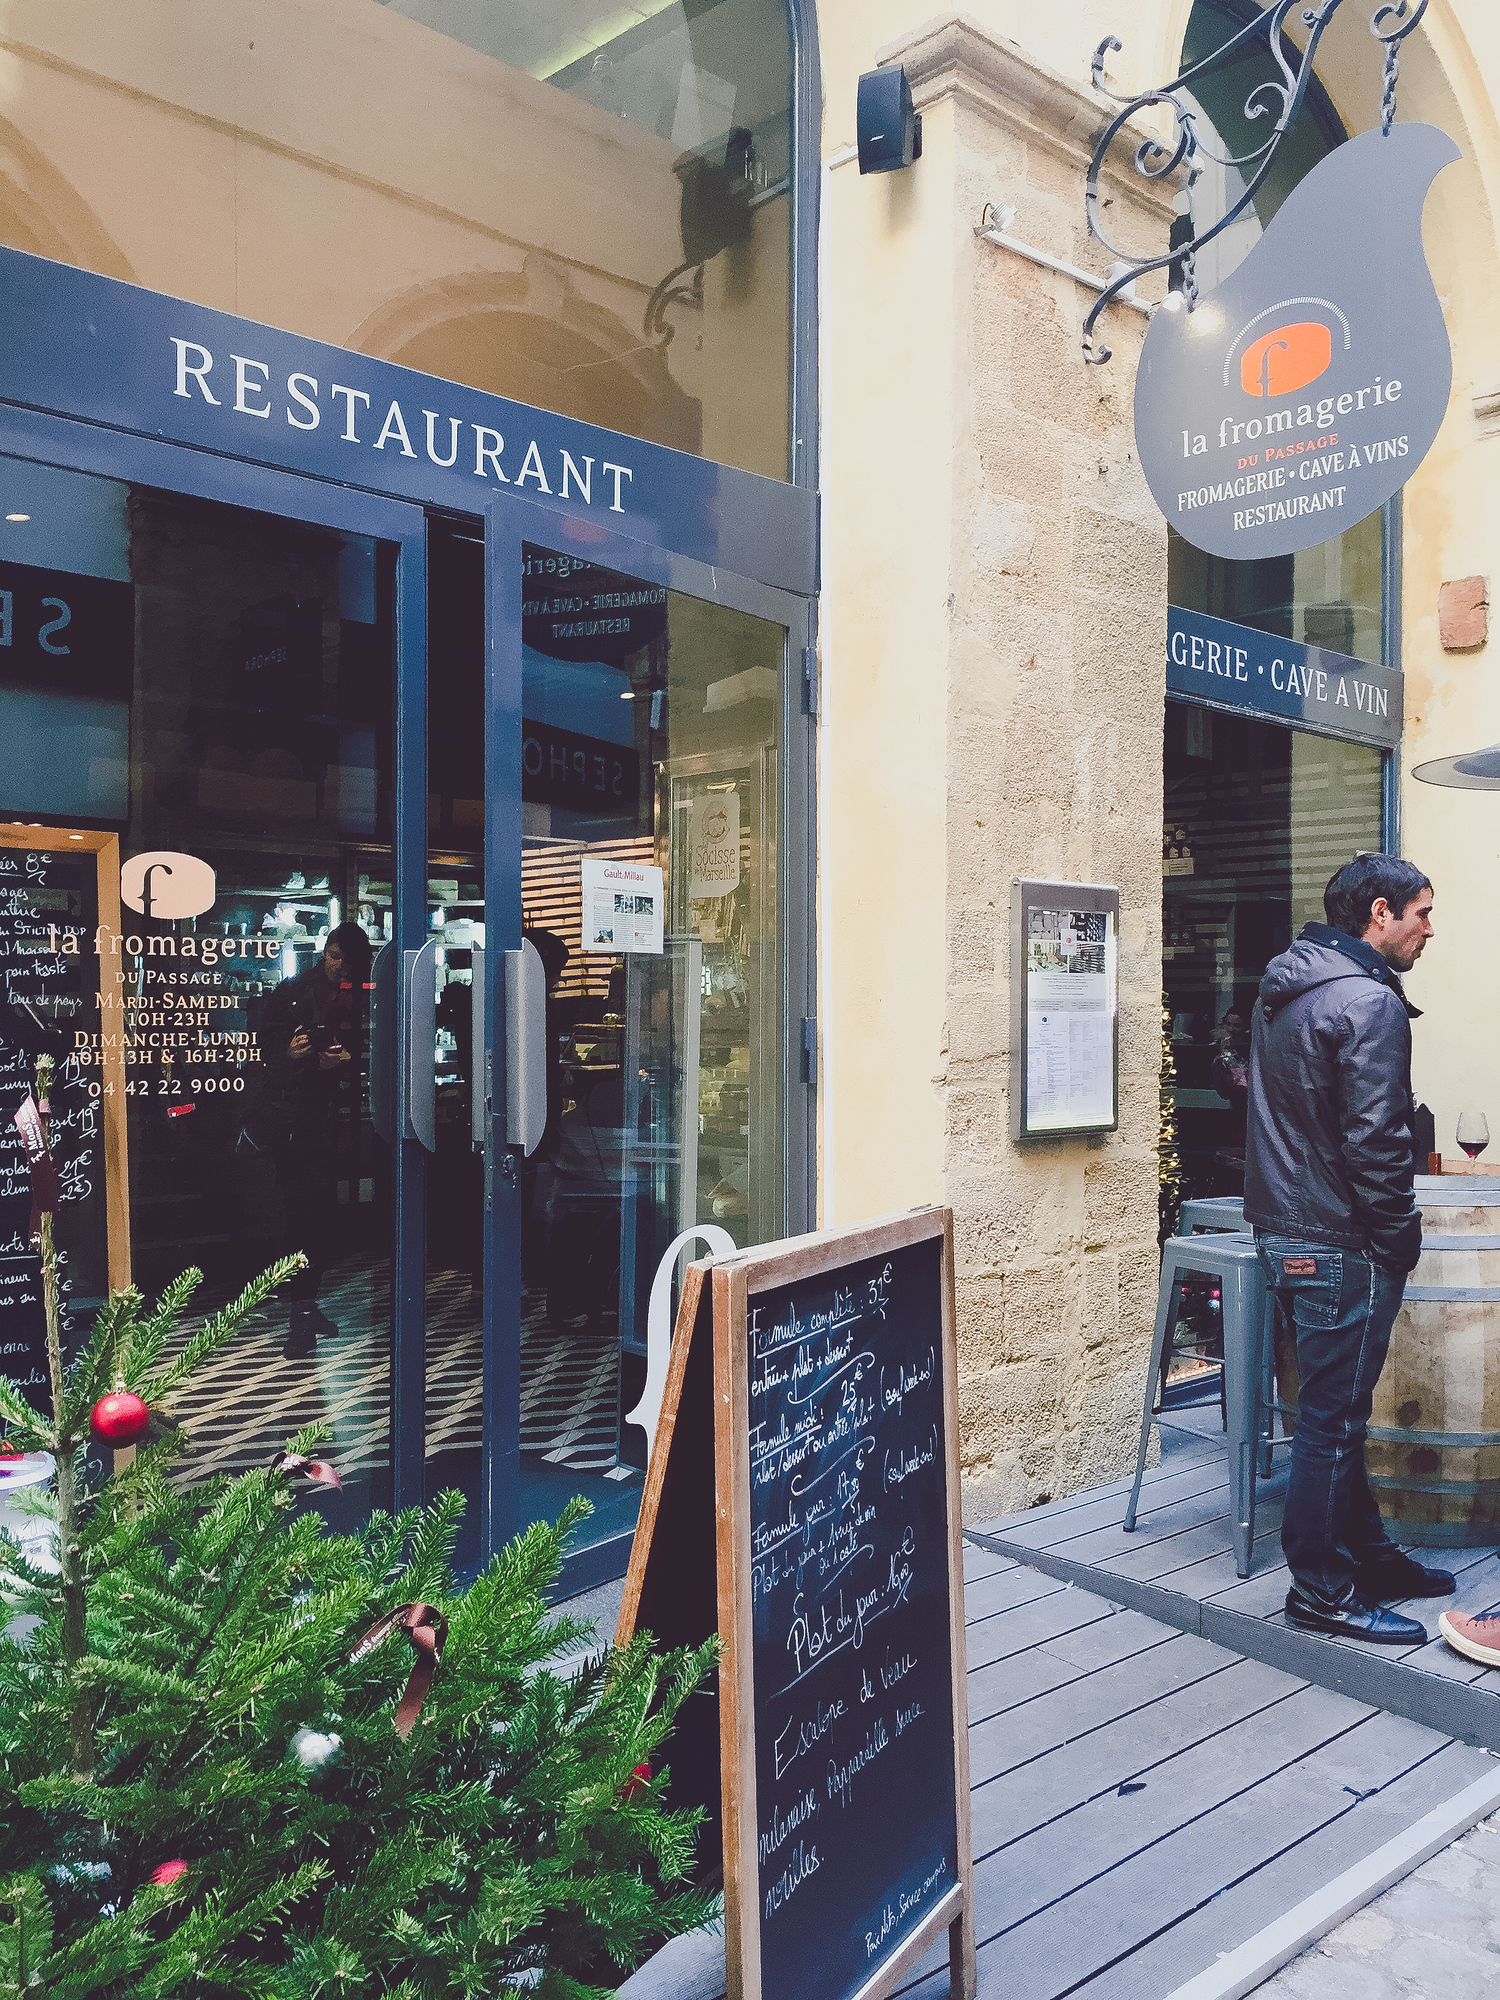 La Fromagerie is one of the most popular restaurants in Aix en Provence. Check out our top locals' picks on where to eat in Aix en Provence and avoid the tourist traps.